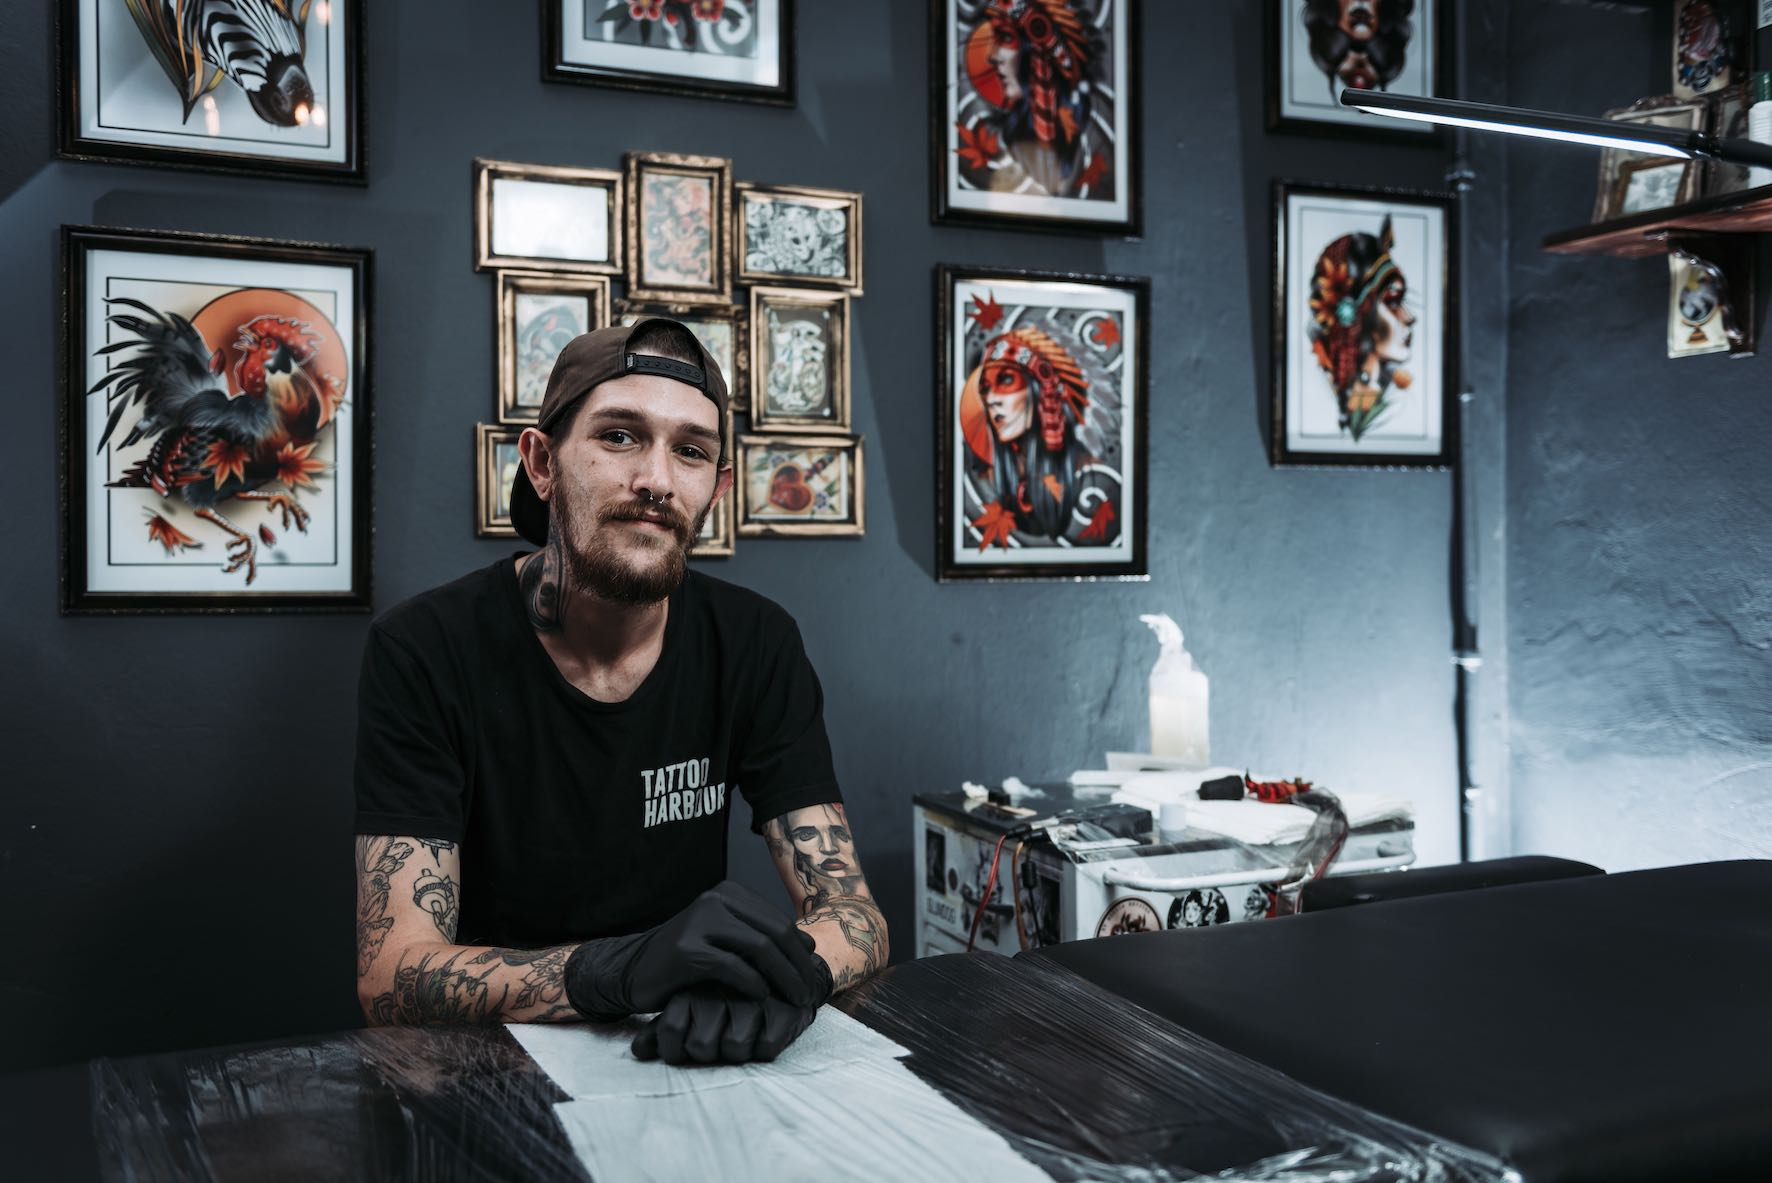 Meet Daniel Forster as our featured tattoo artist